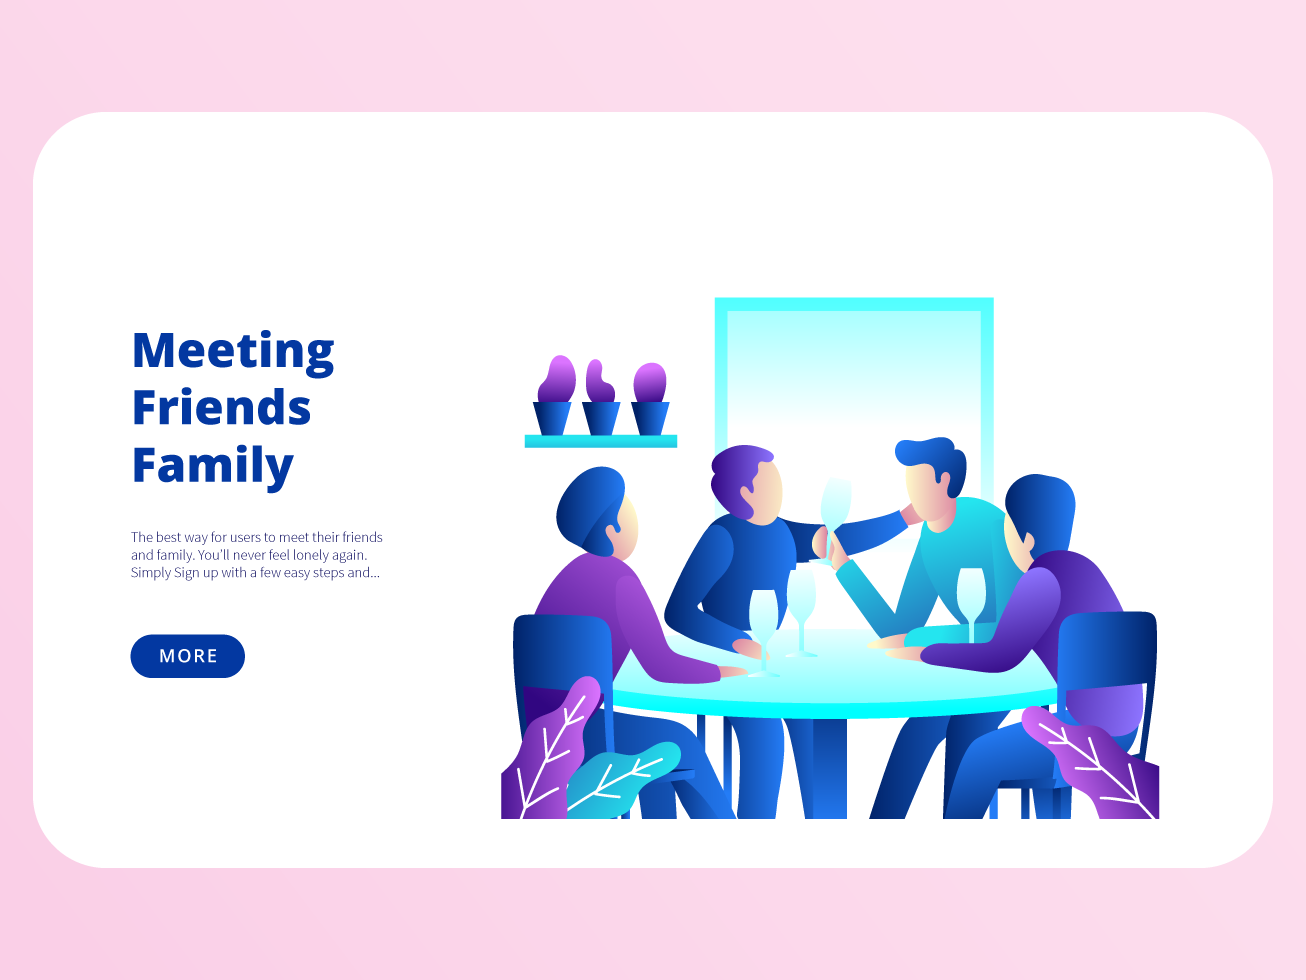 Meeting Friends Family by Steven Telfer on Dribbble